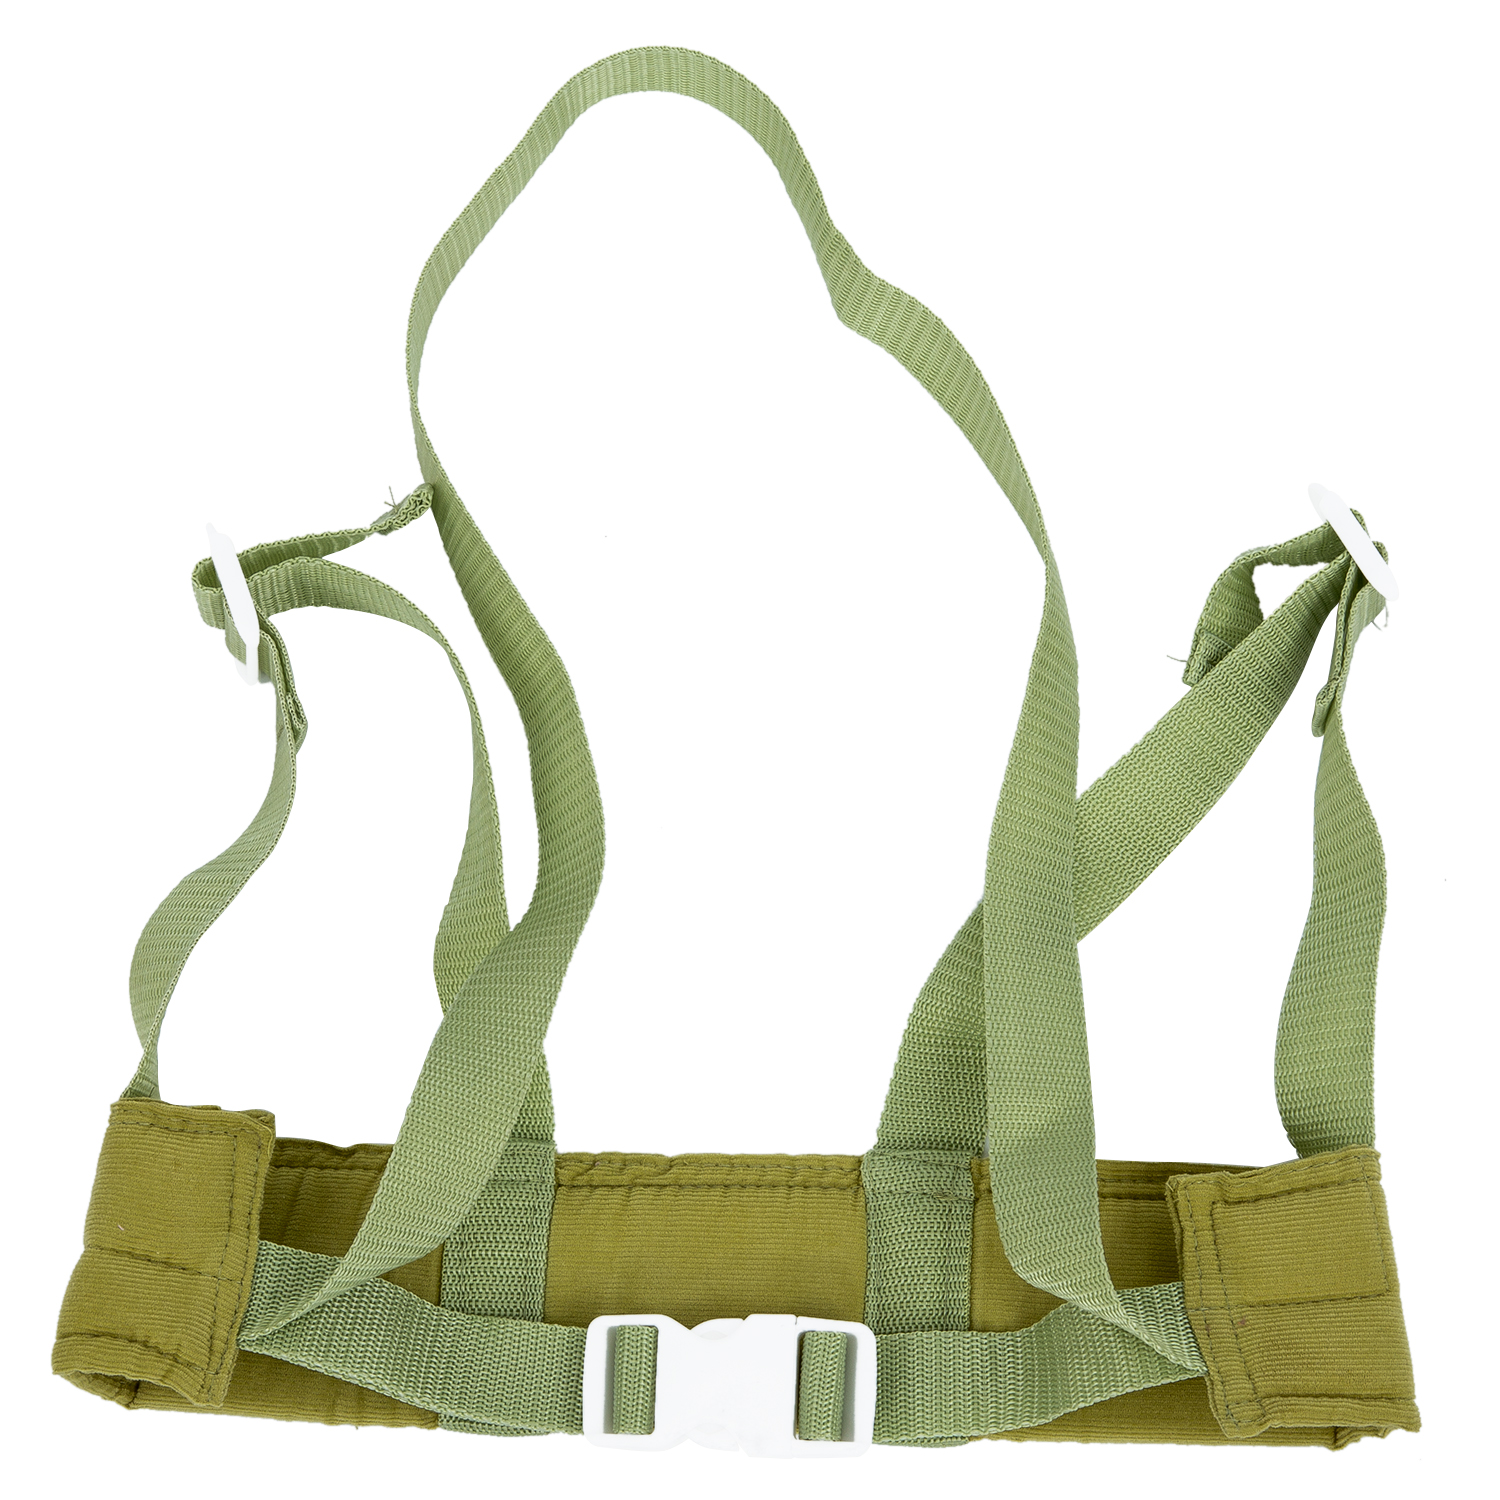 ABWE Best Sale Baby Child Toddler Safety Easy Wash Harness Step Walking Assistant Reins Green